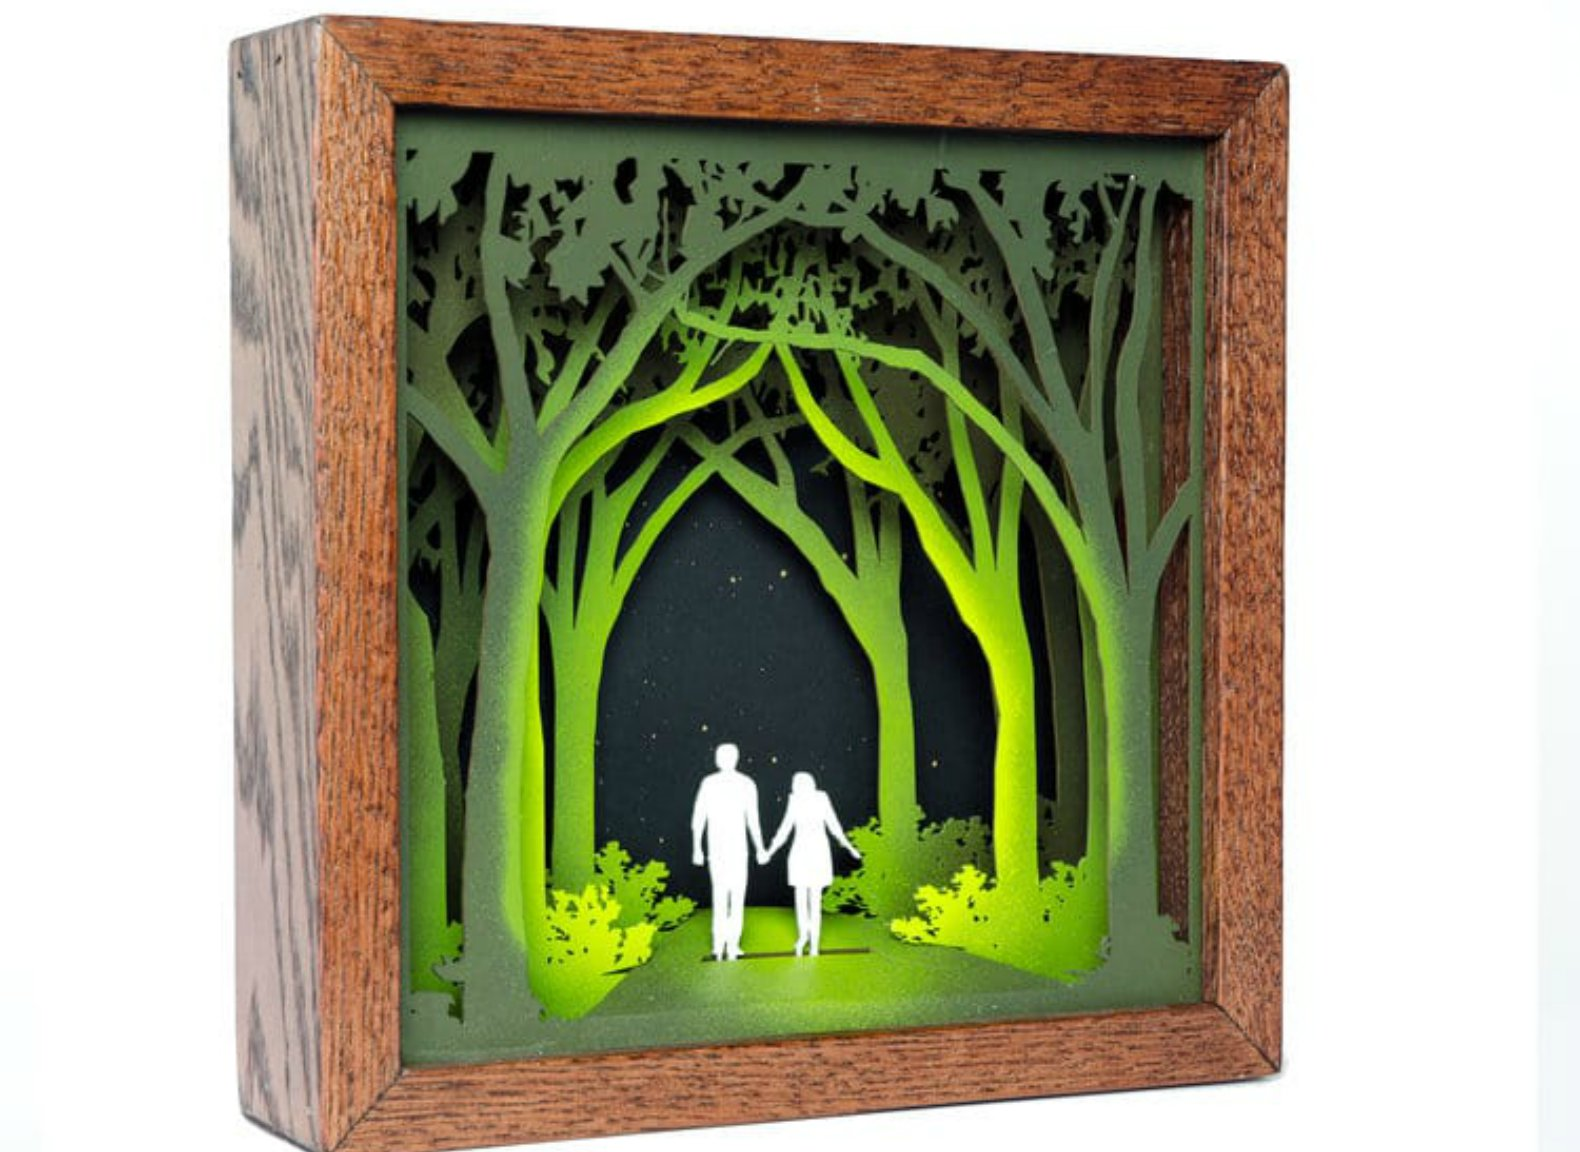 Artist Creates Intricate Shadowboxes Out Of Laser Cut Wood